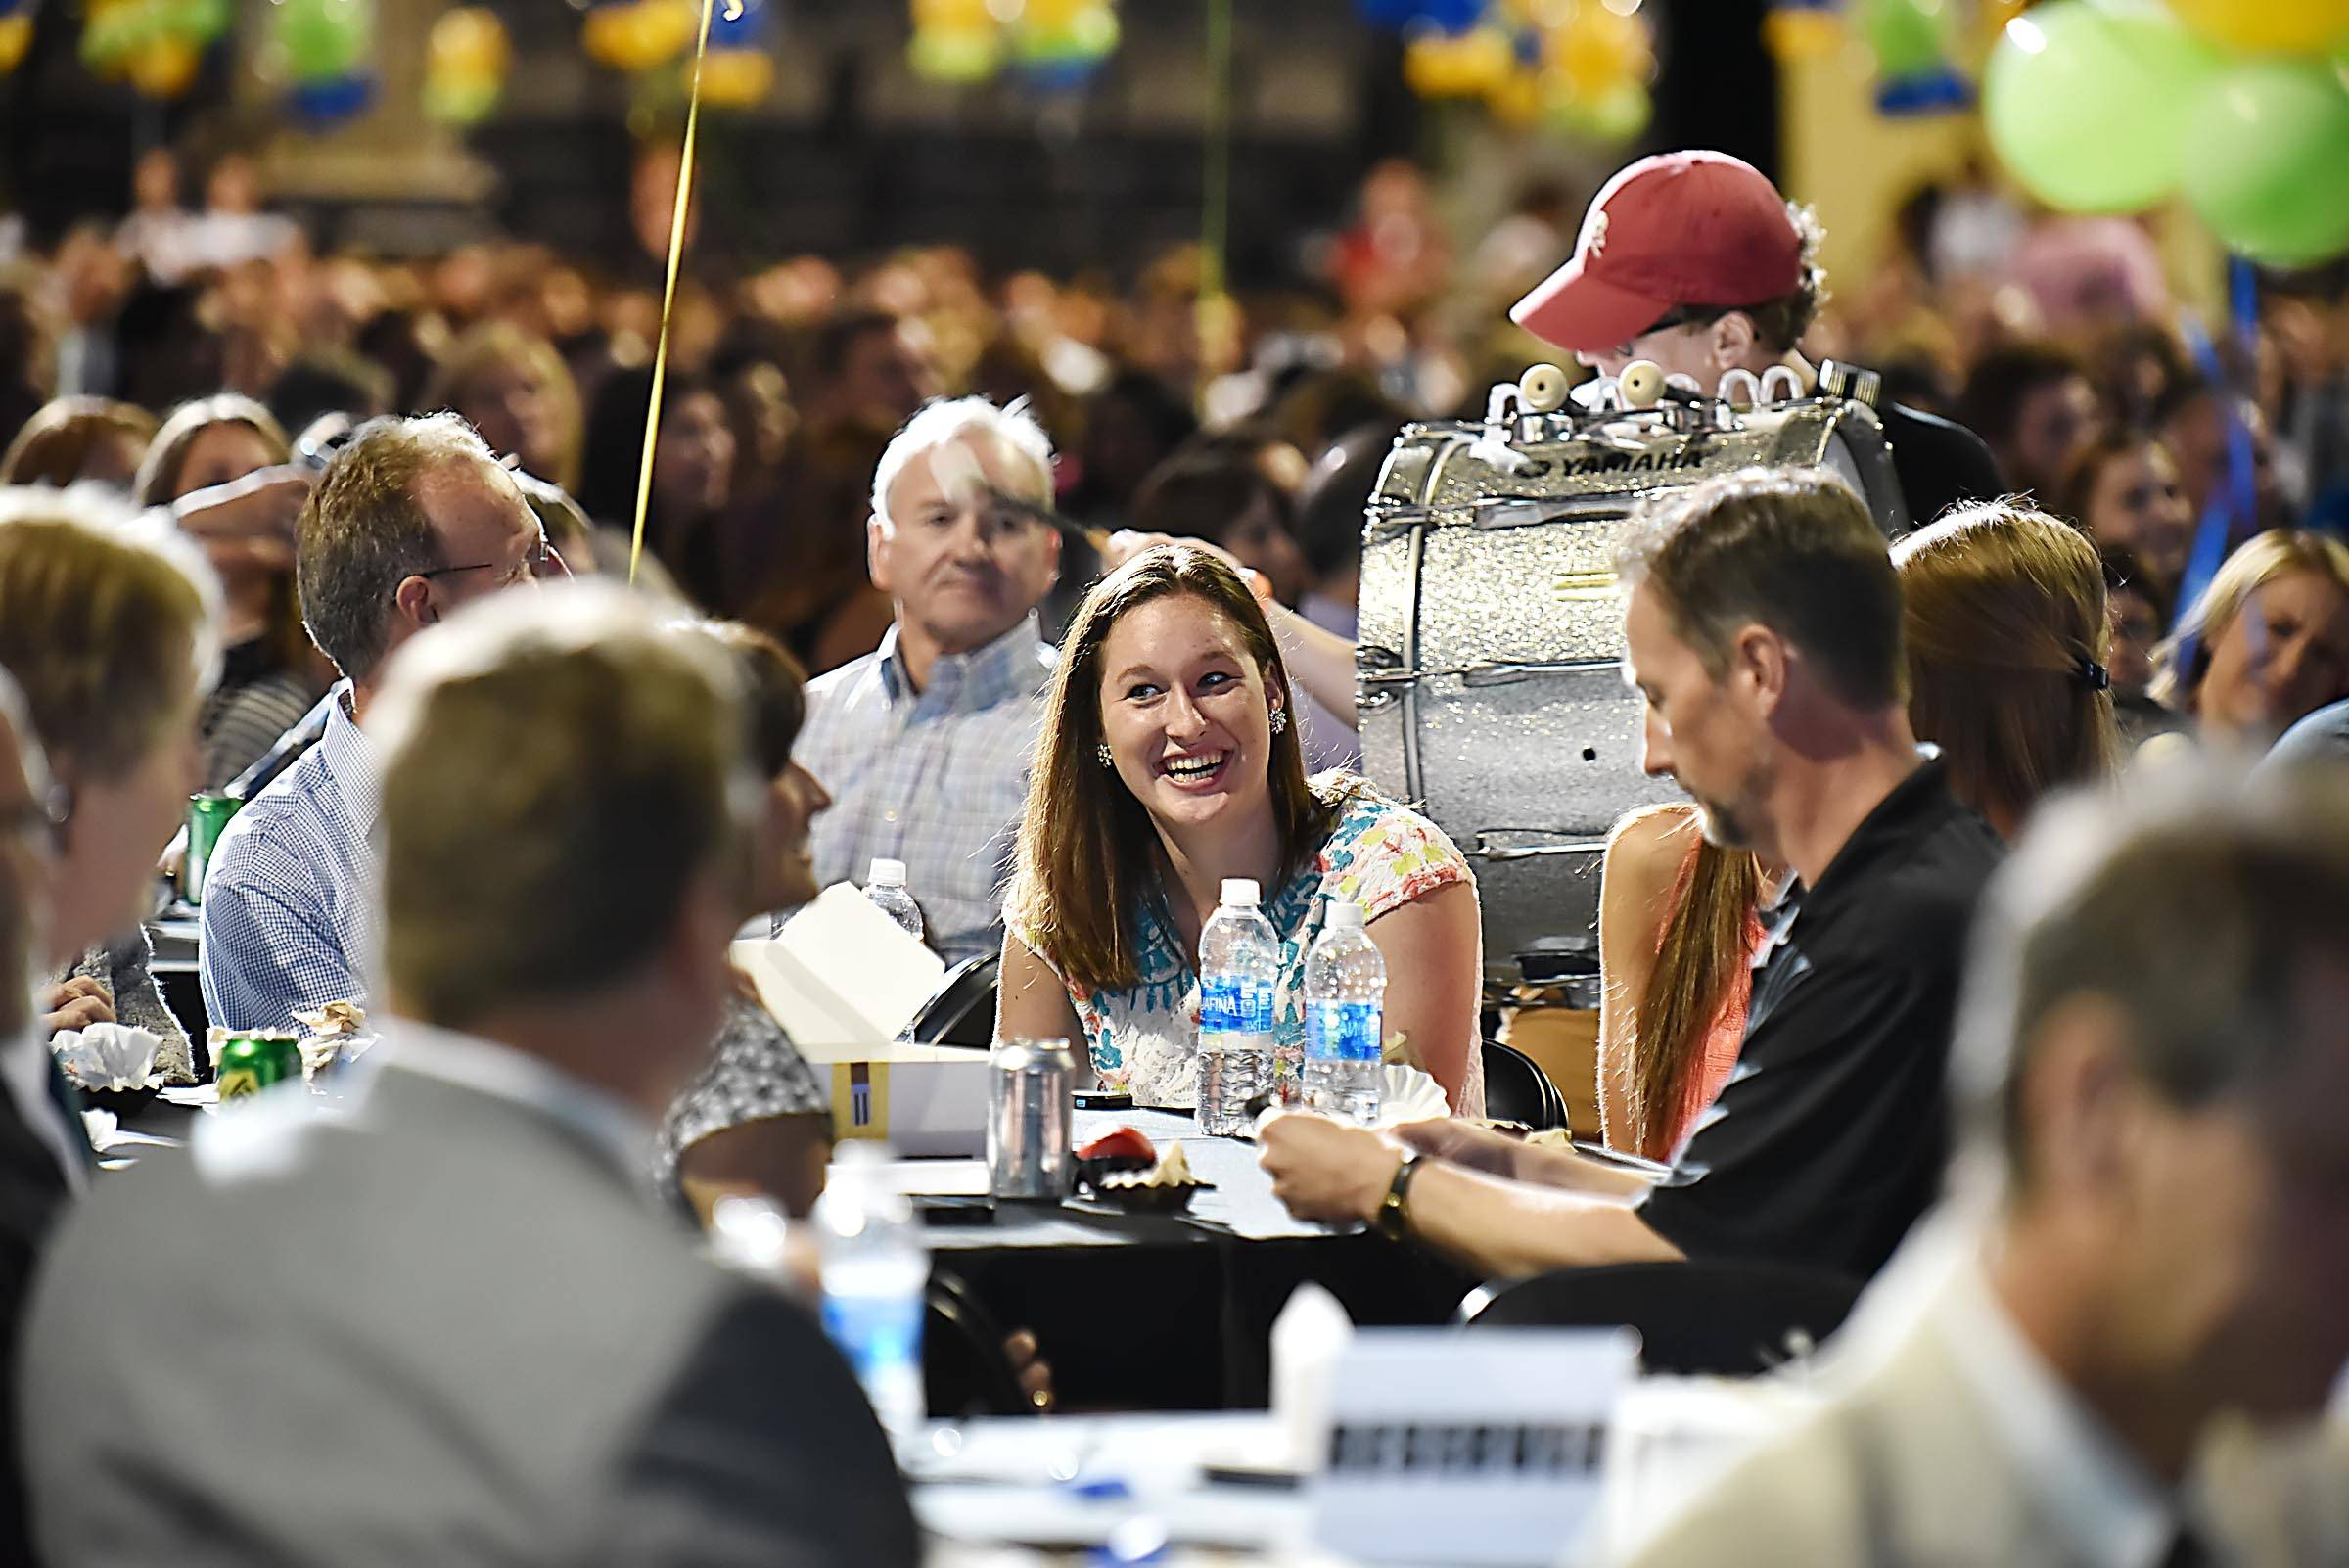 Katie Schroeder, of Grayslake Central High School laughs as a drummer plays close to her table during the Daily Herald Prep Sports Excellence Awards banquet at the Sears Centre Arena in Hoffman Estates Sunday.